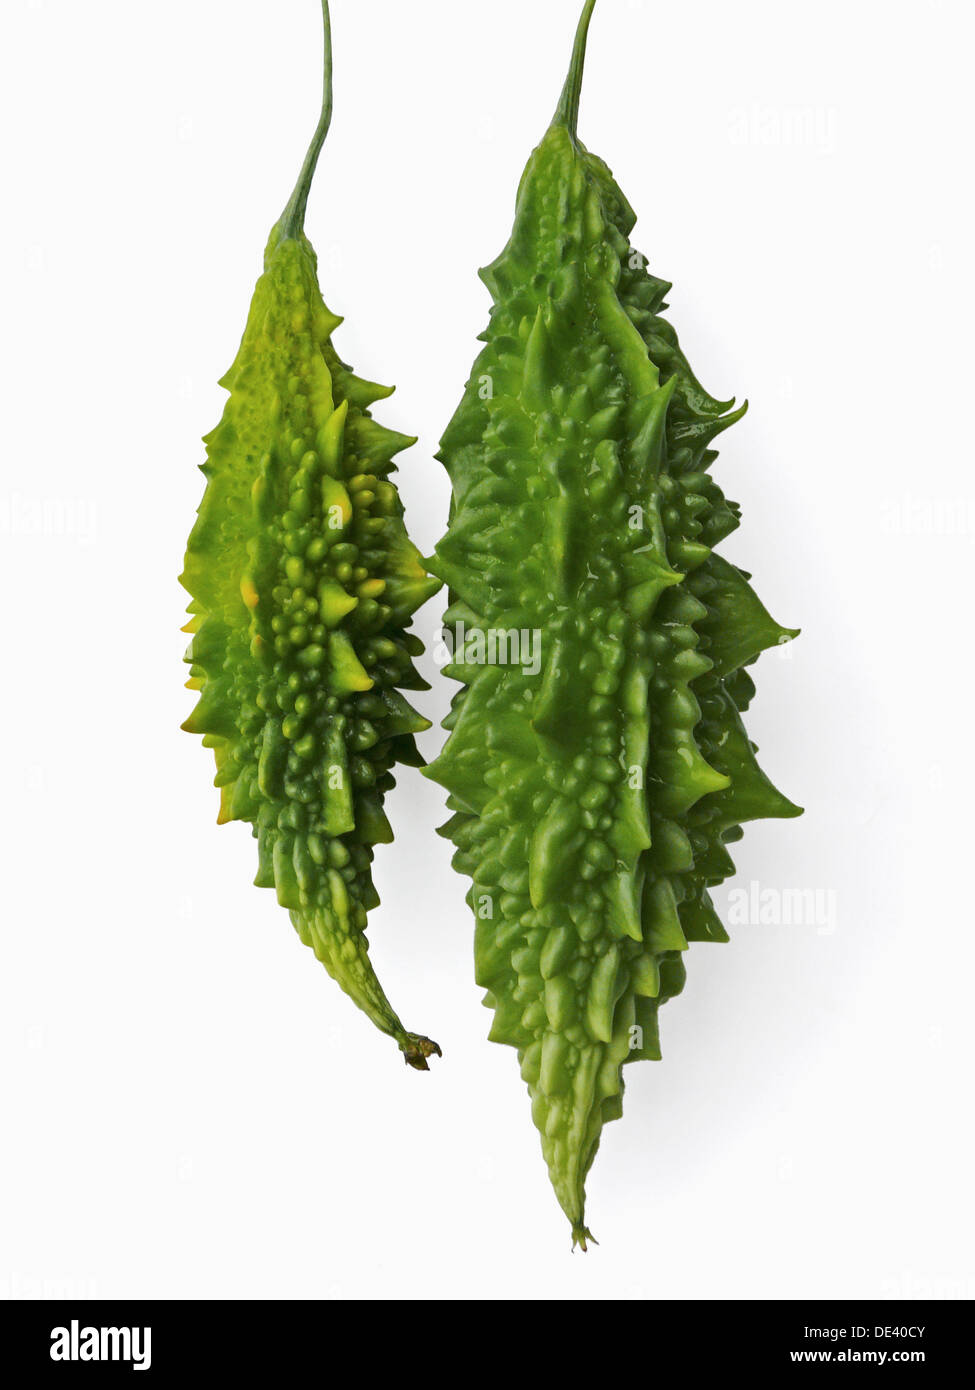 Indian Balsam Stock Photos &amp- Indian Balsam Stock Images - Alamy